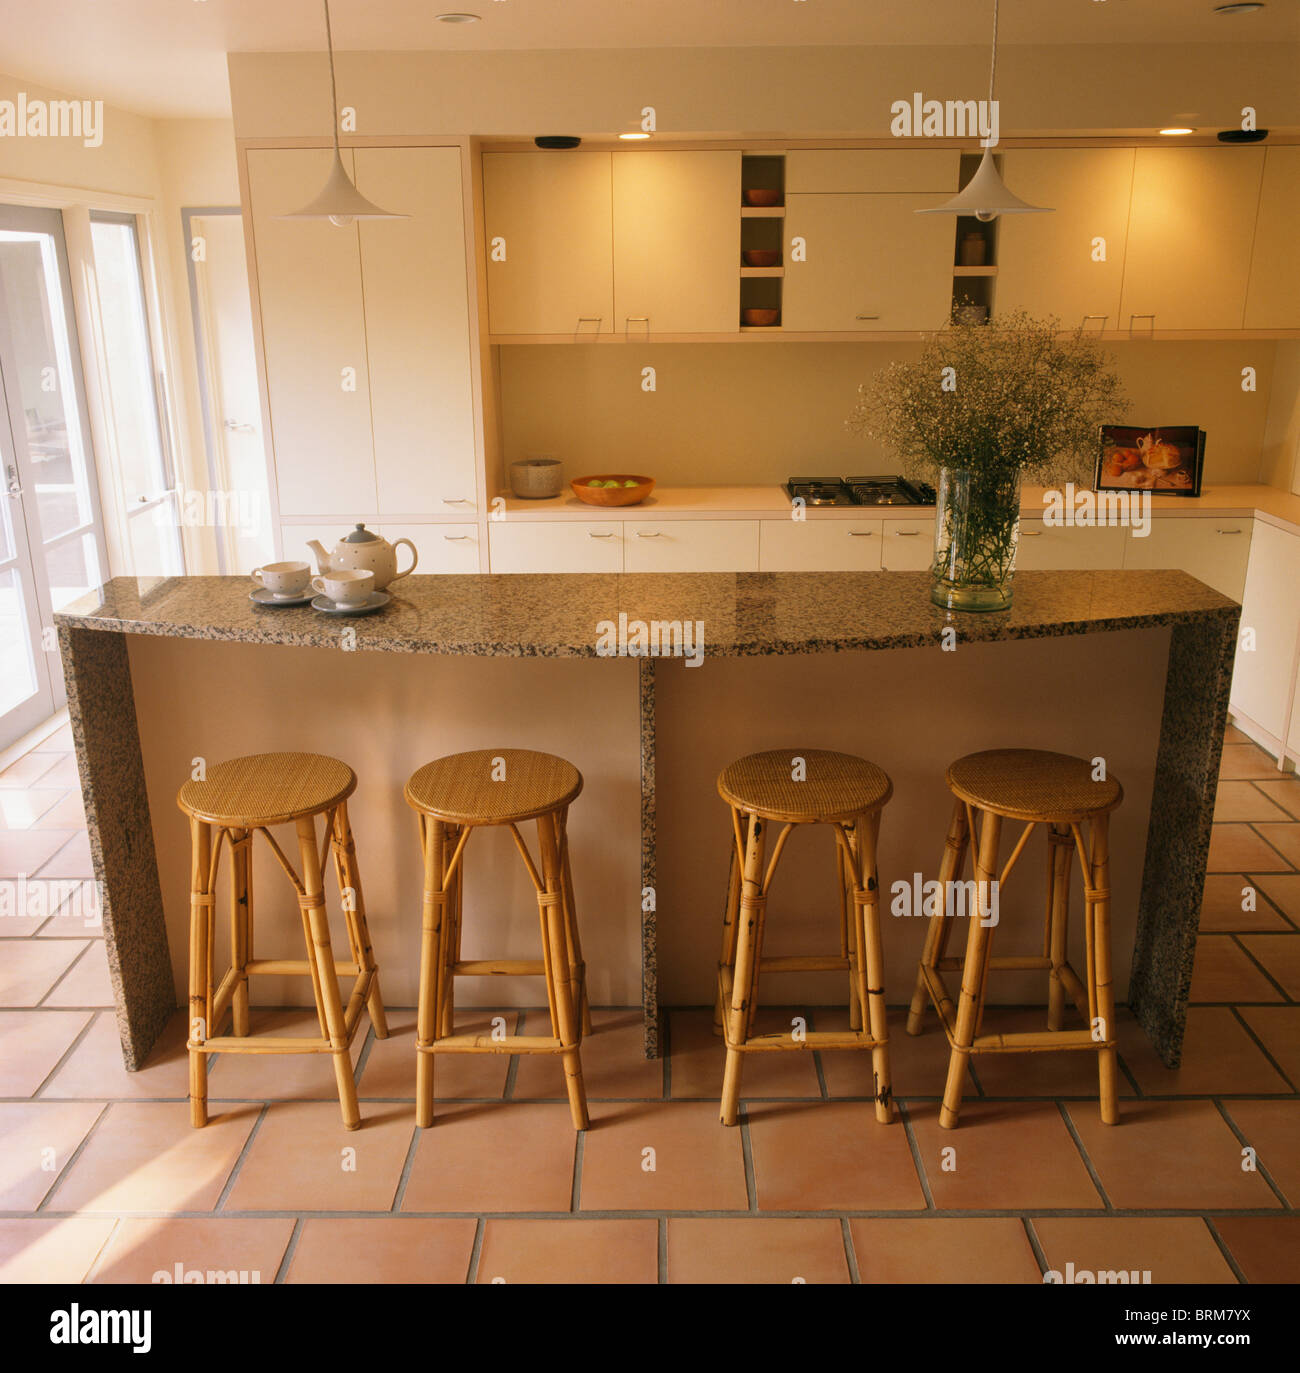 modern kitchen stools maple table cane at breakfast bar on granite topped island unit in with down lighting above cupboards